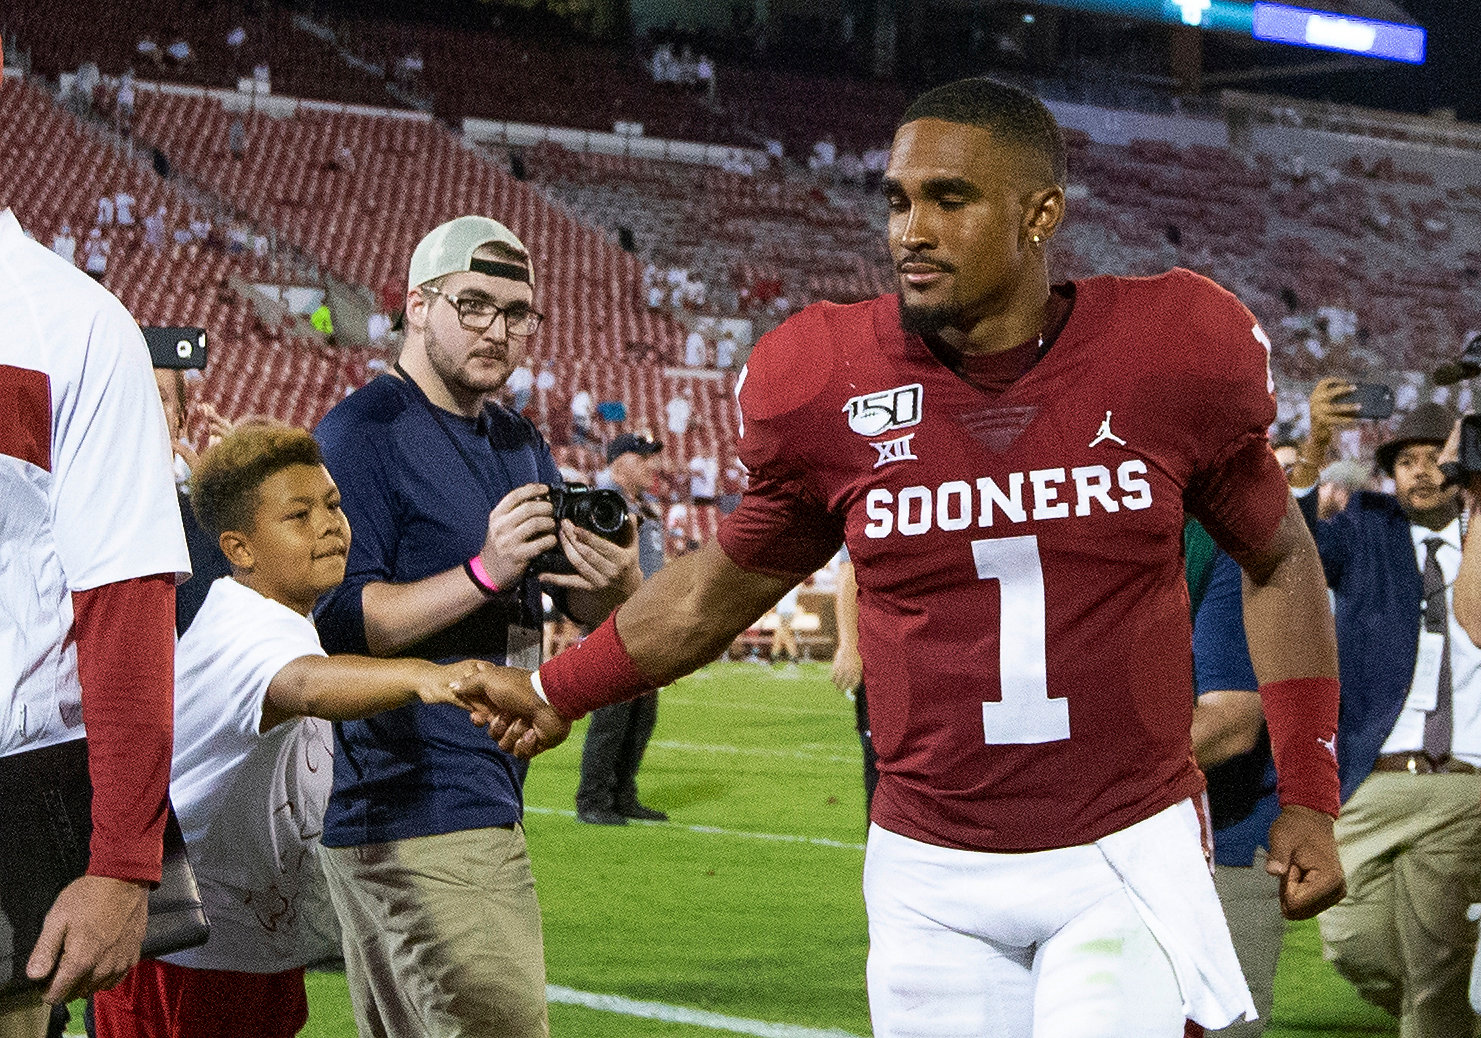 Oklahoma quarterback Jalen Hurts (1) greets a fan following the Sooners' 49-31 win  against Houston in Norman, Okla., Sunday, Sept. 1, 2019. (AP Photo/Alonzo Adams)